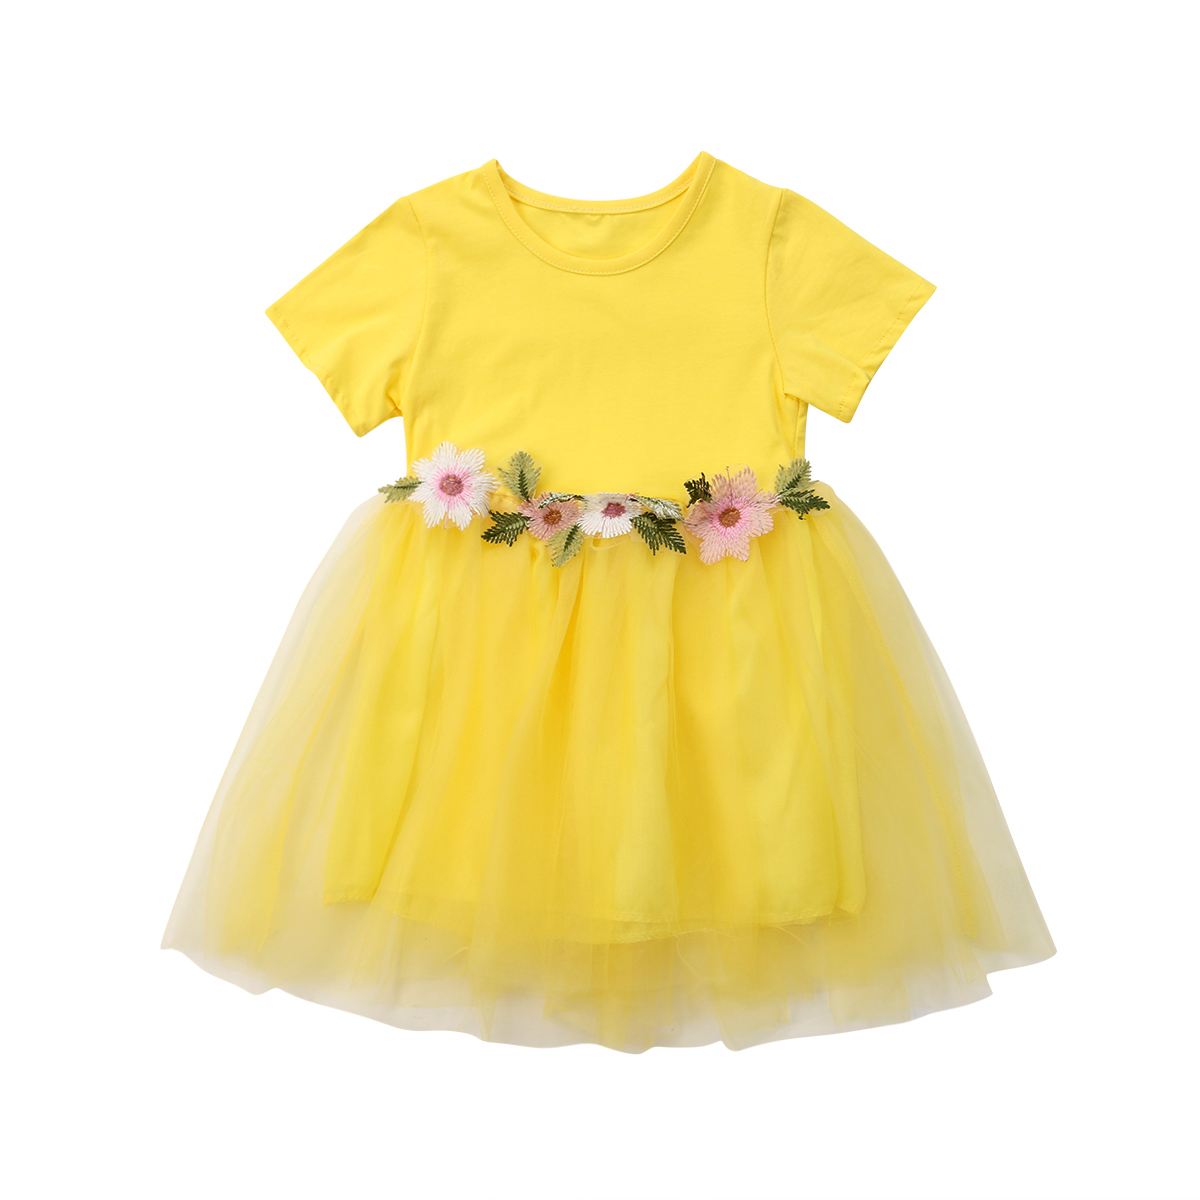 2018 Cute Toddler Baby Girl Cotton Lace Flower Pink Yellow Dress Kids Girl Party -1386